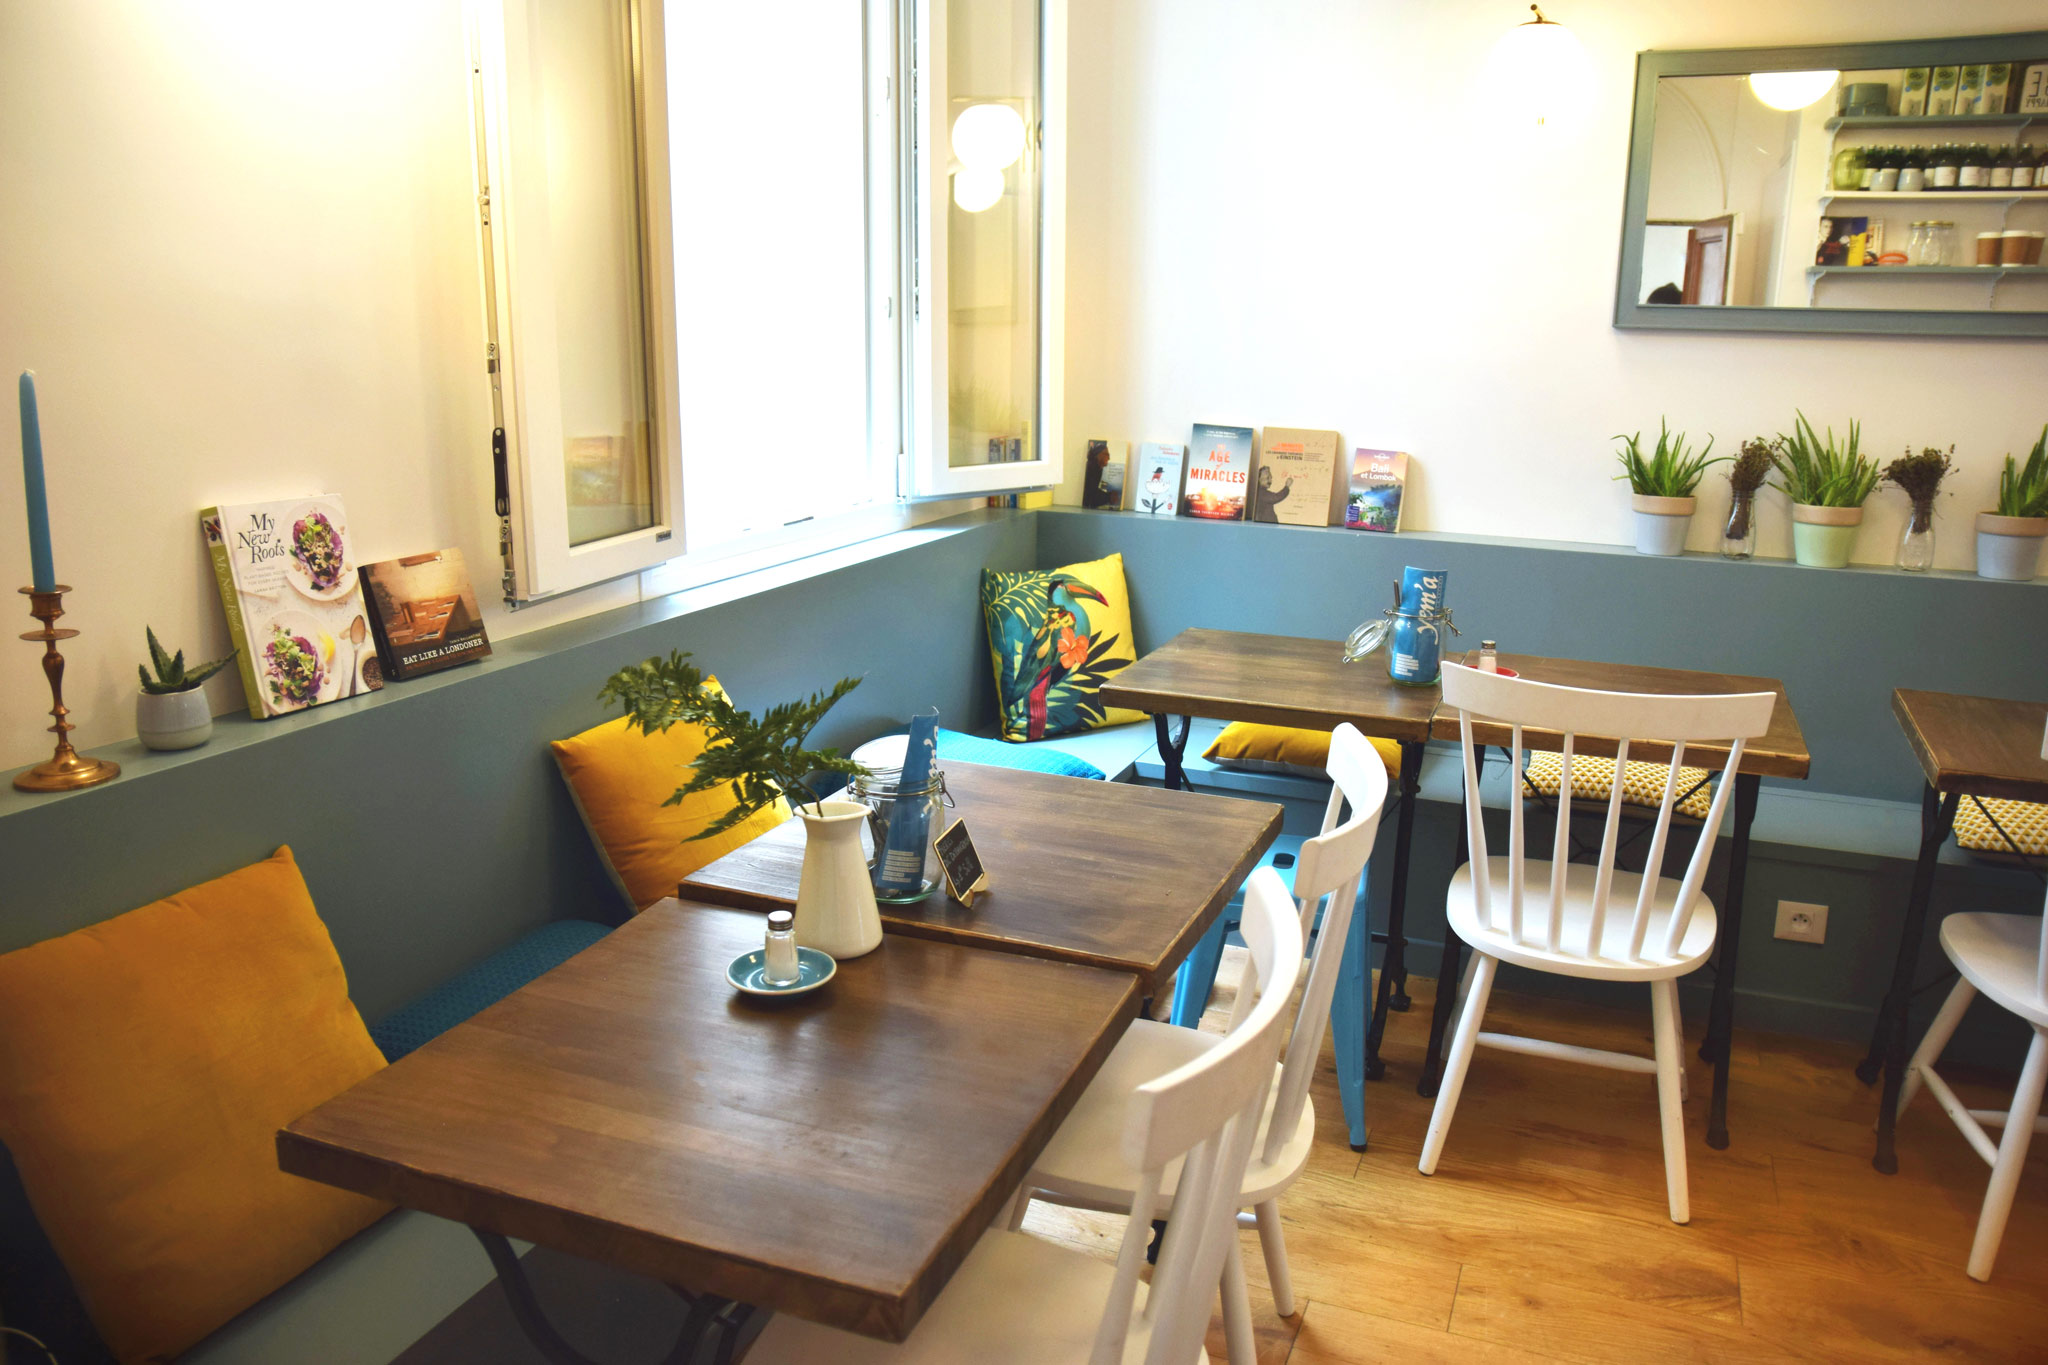 HiP Paris' guide to gluten-free restaurants and bakeries in Paris, includes Yem'a with its cheery decor of wooden tables, potted cacti and mustard-yellow and vibrant turquoise cushions.